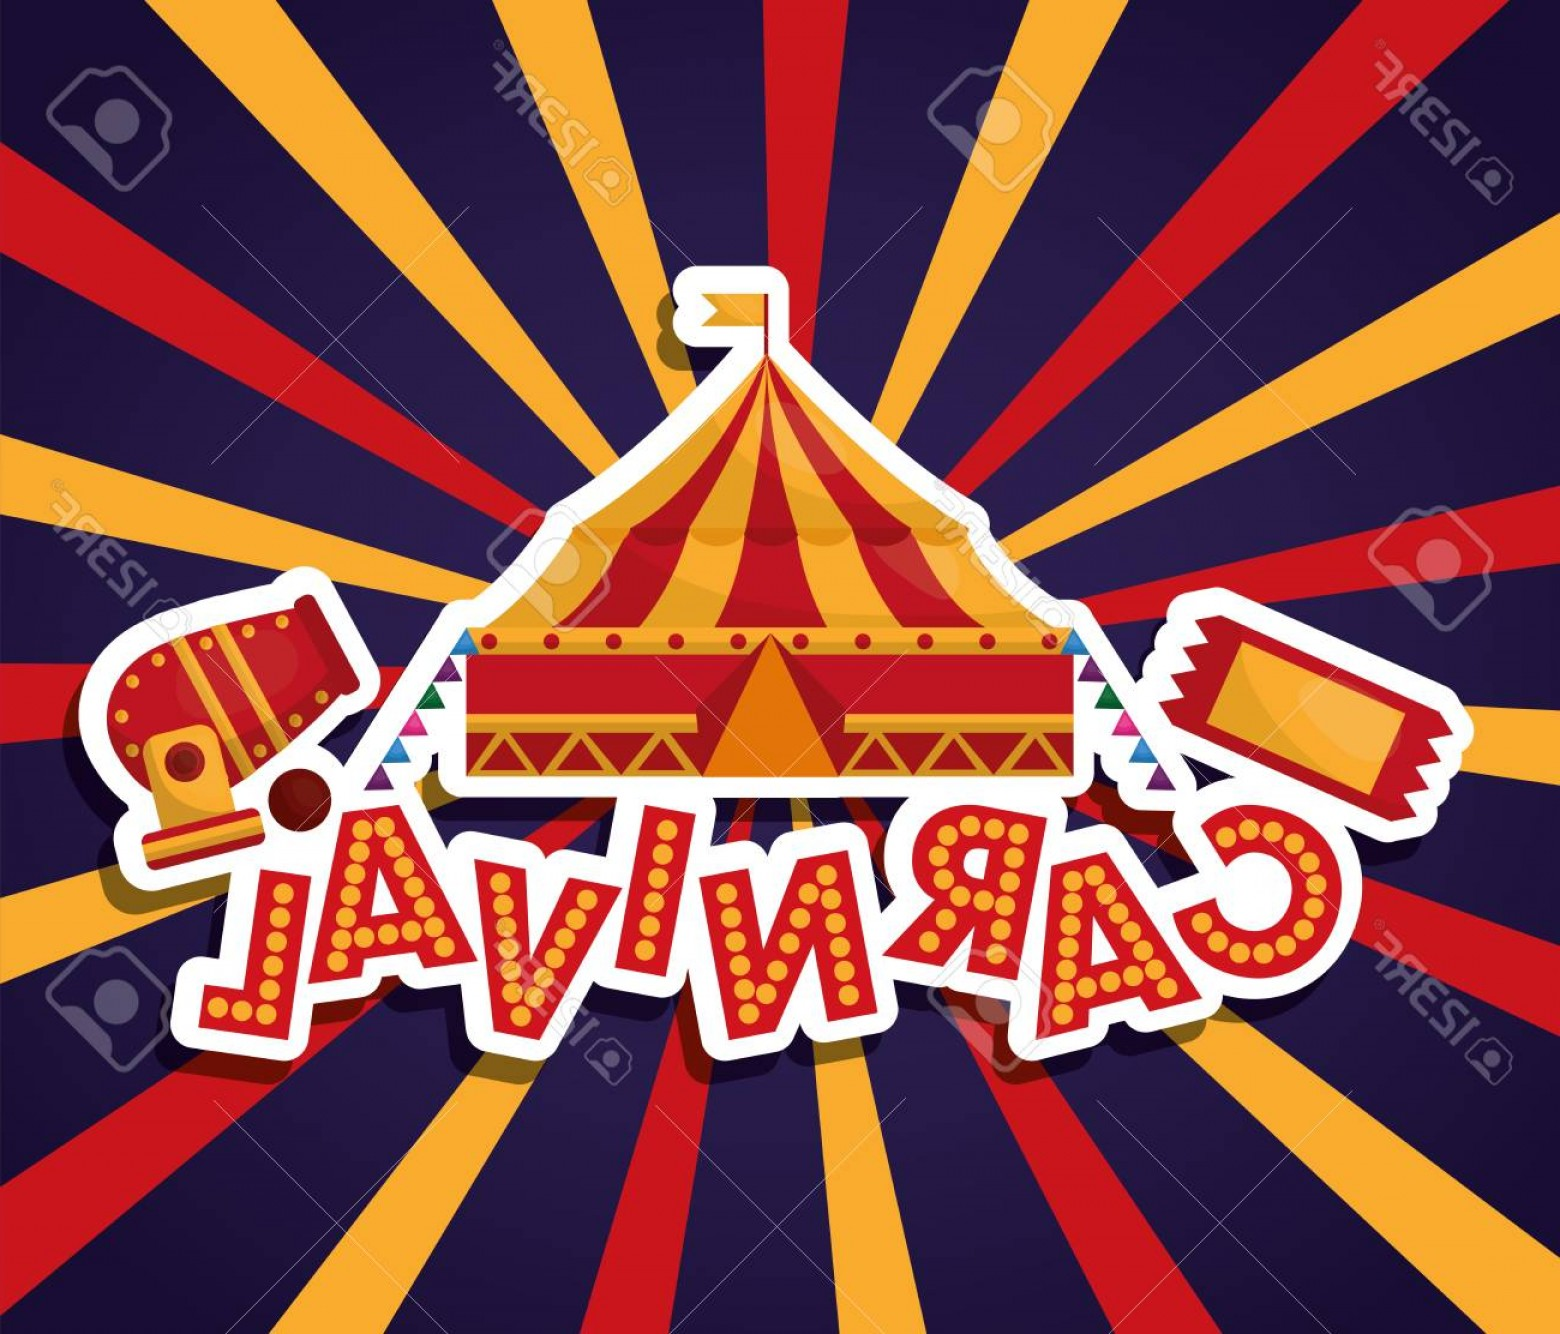 Circus Background Vector: Photostock Vector Carnival Circus Canon Tent Ticket Sunburst Background Vector Illustration